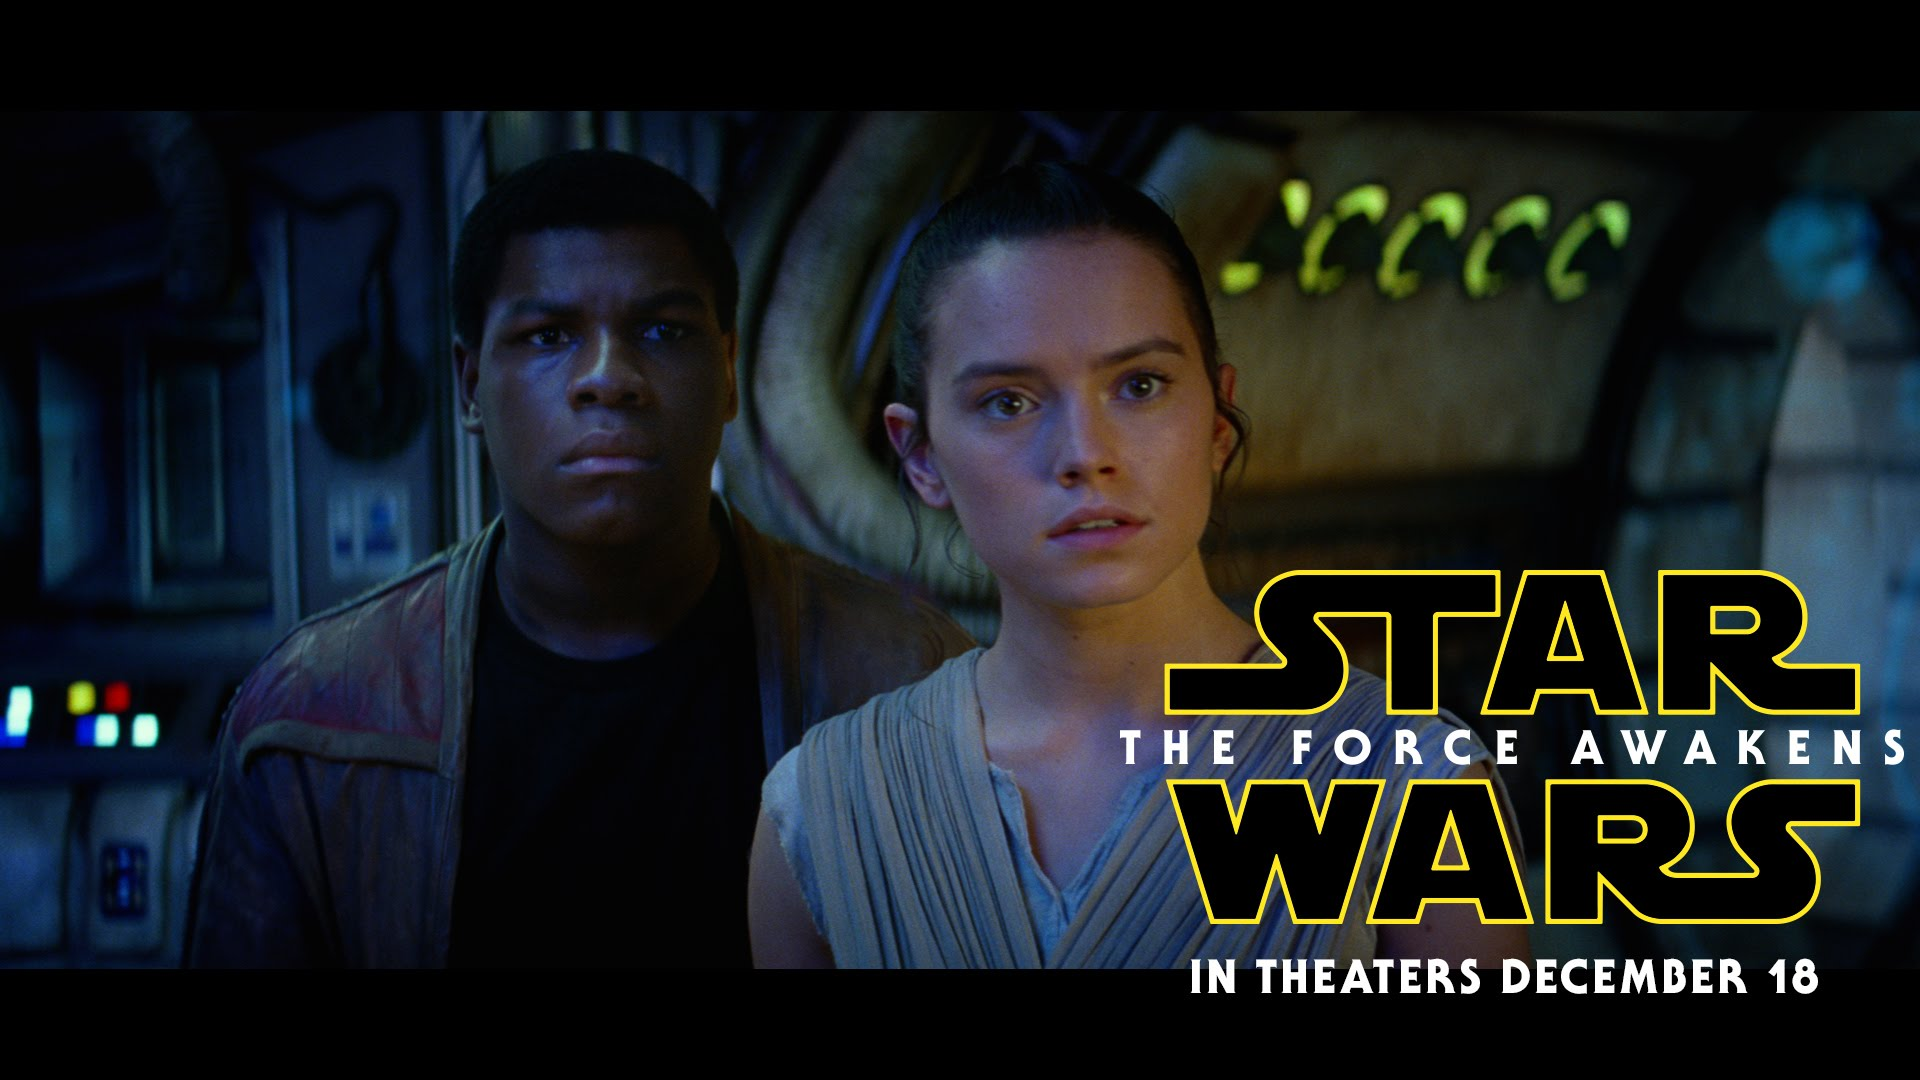 New Star Wars The Force Awakens Movie Posters Revealed